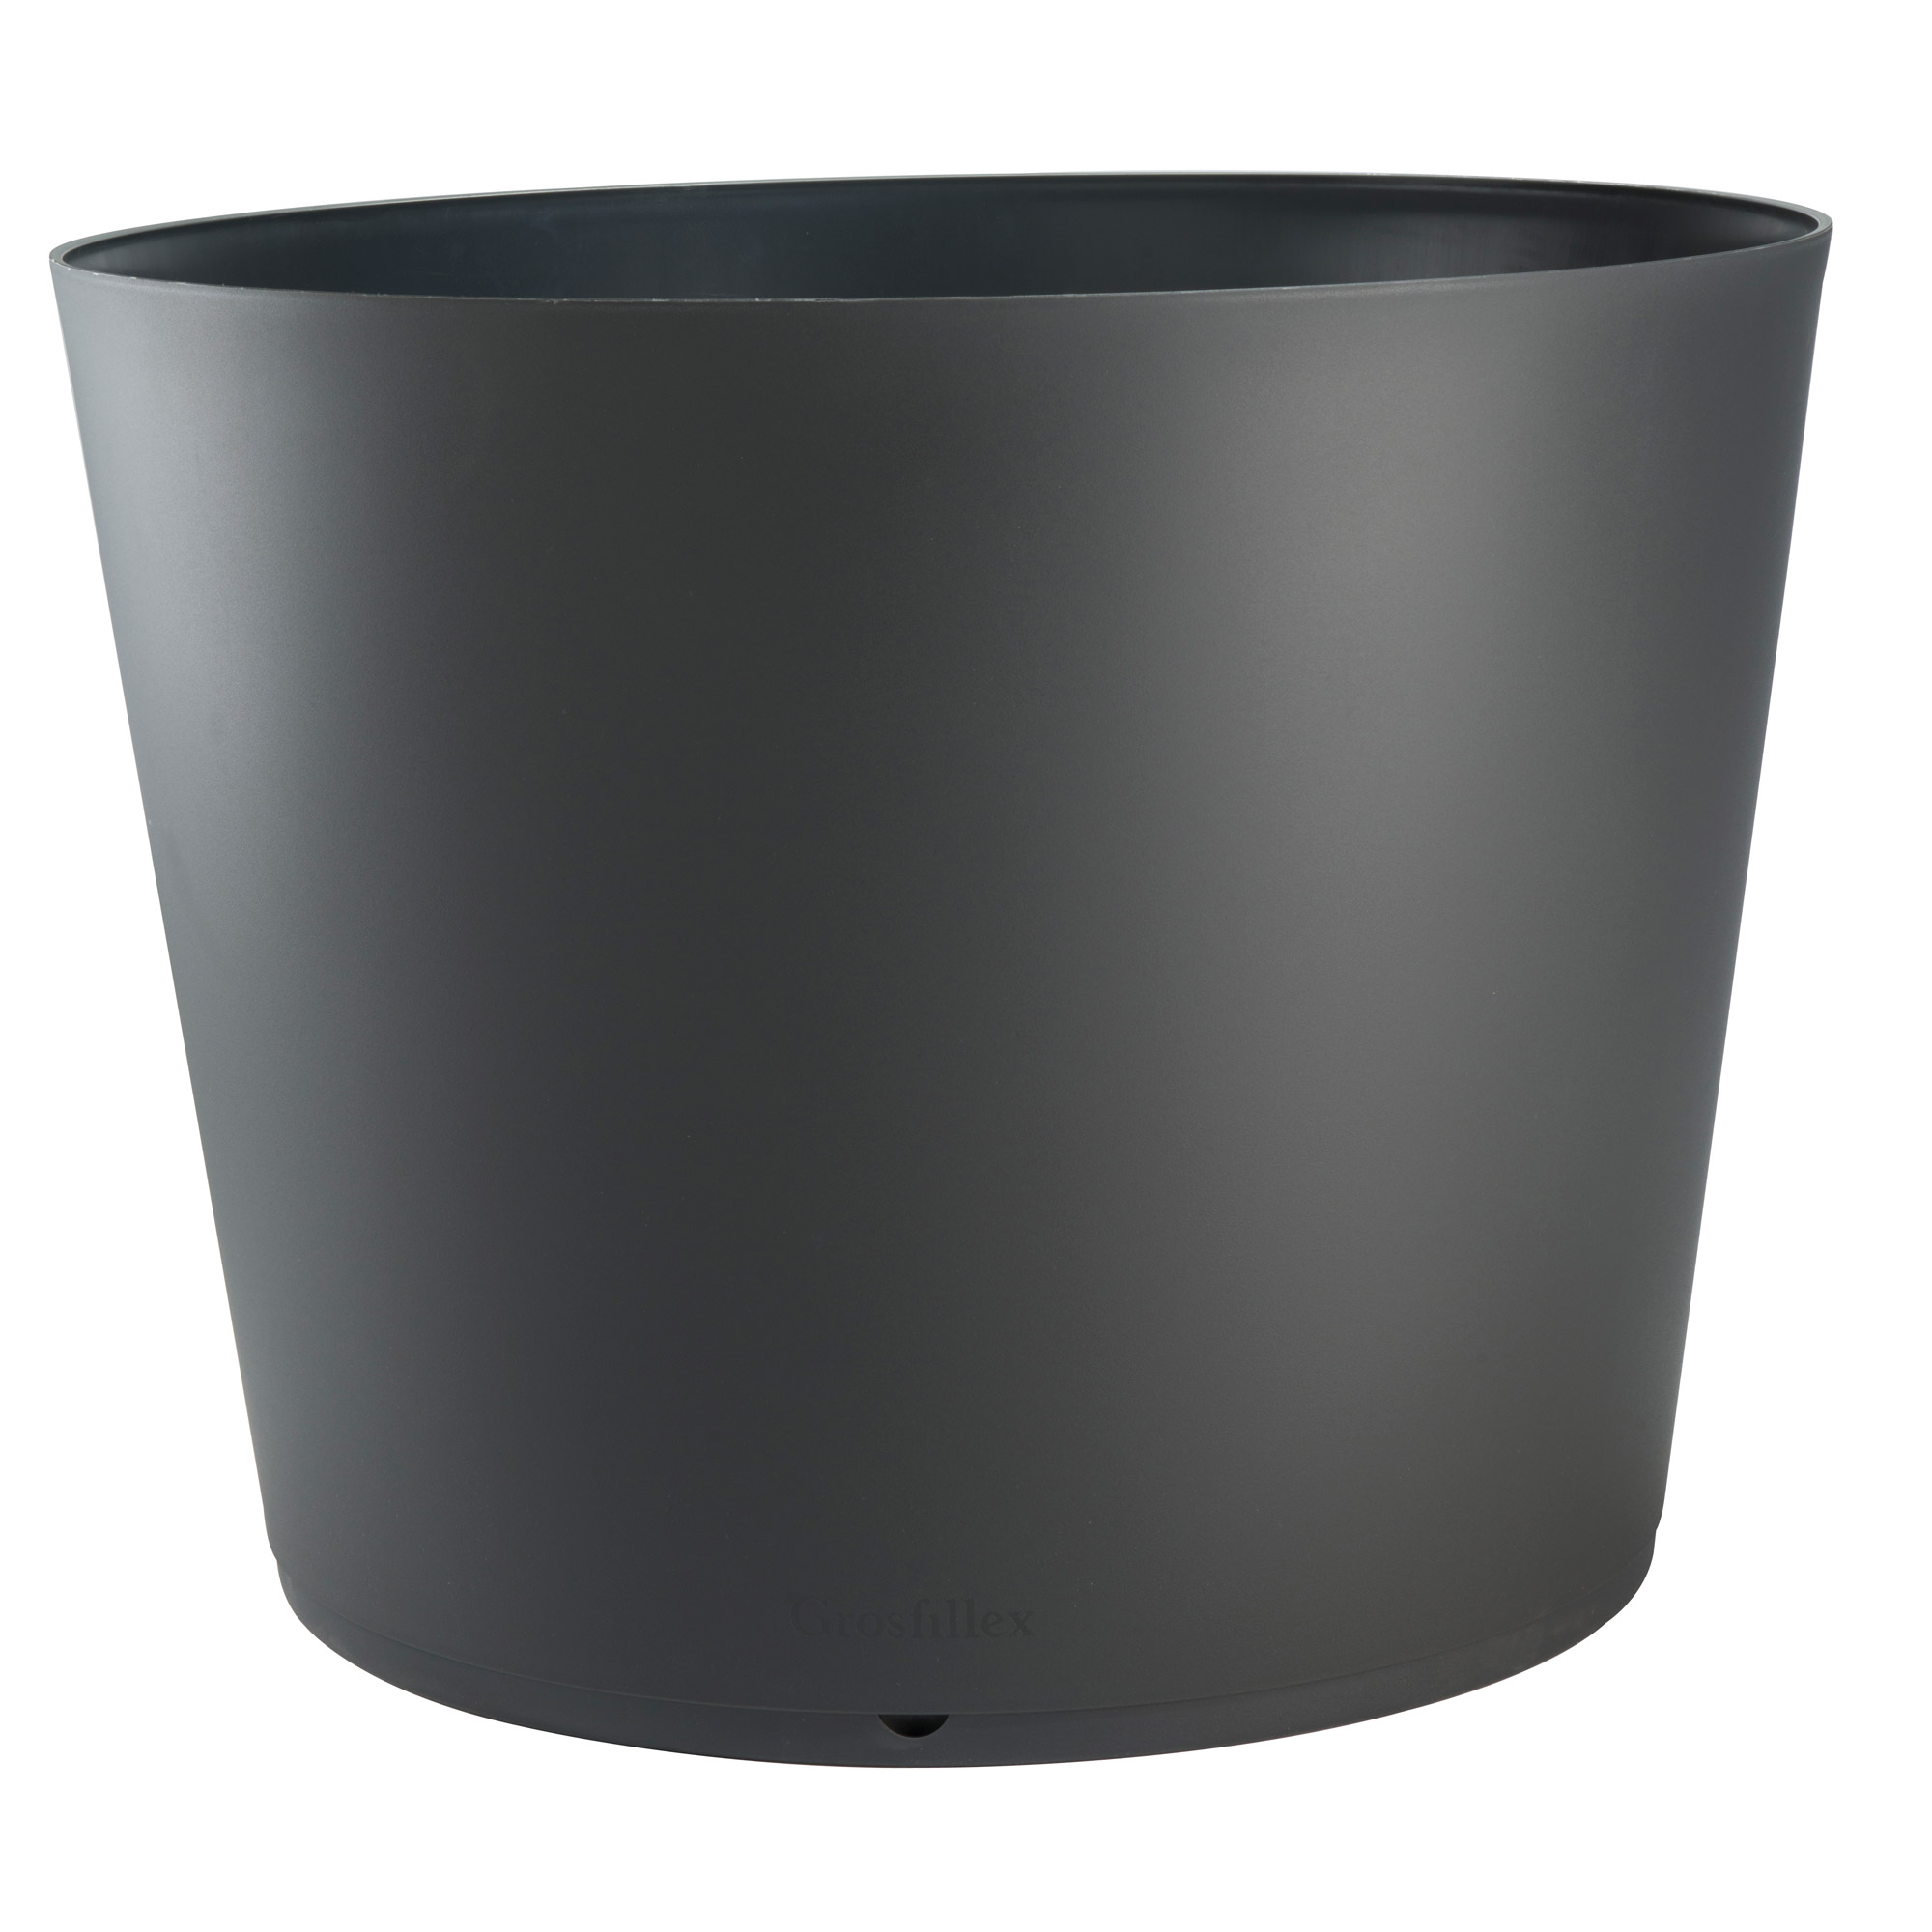 Poterie Tokyo Ø80 - Anthracite